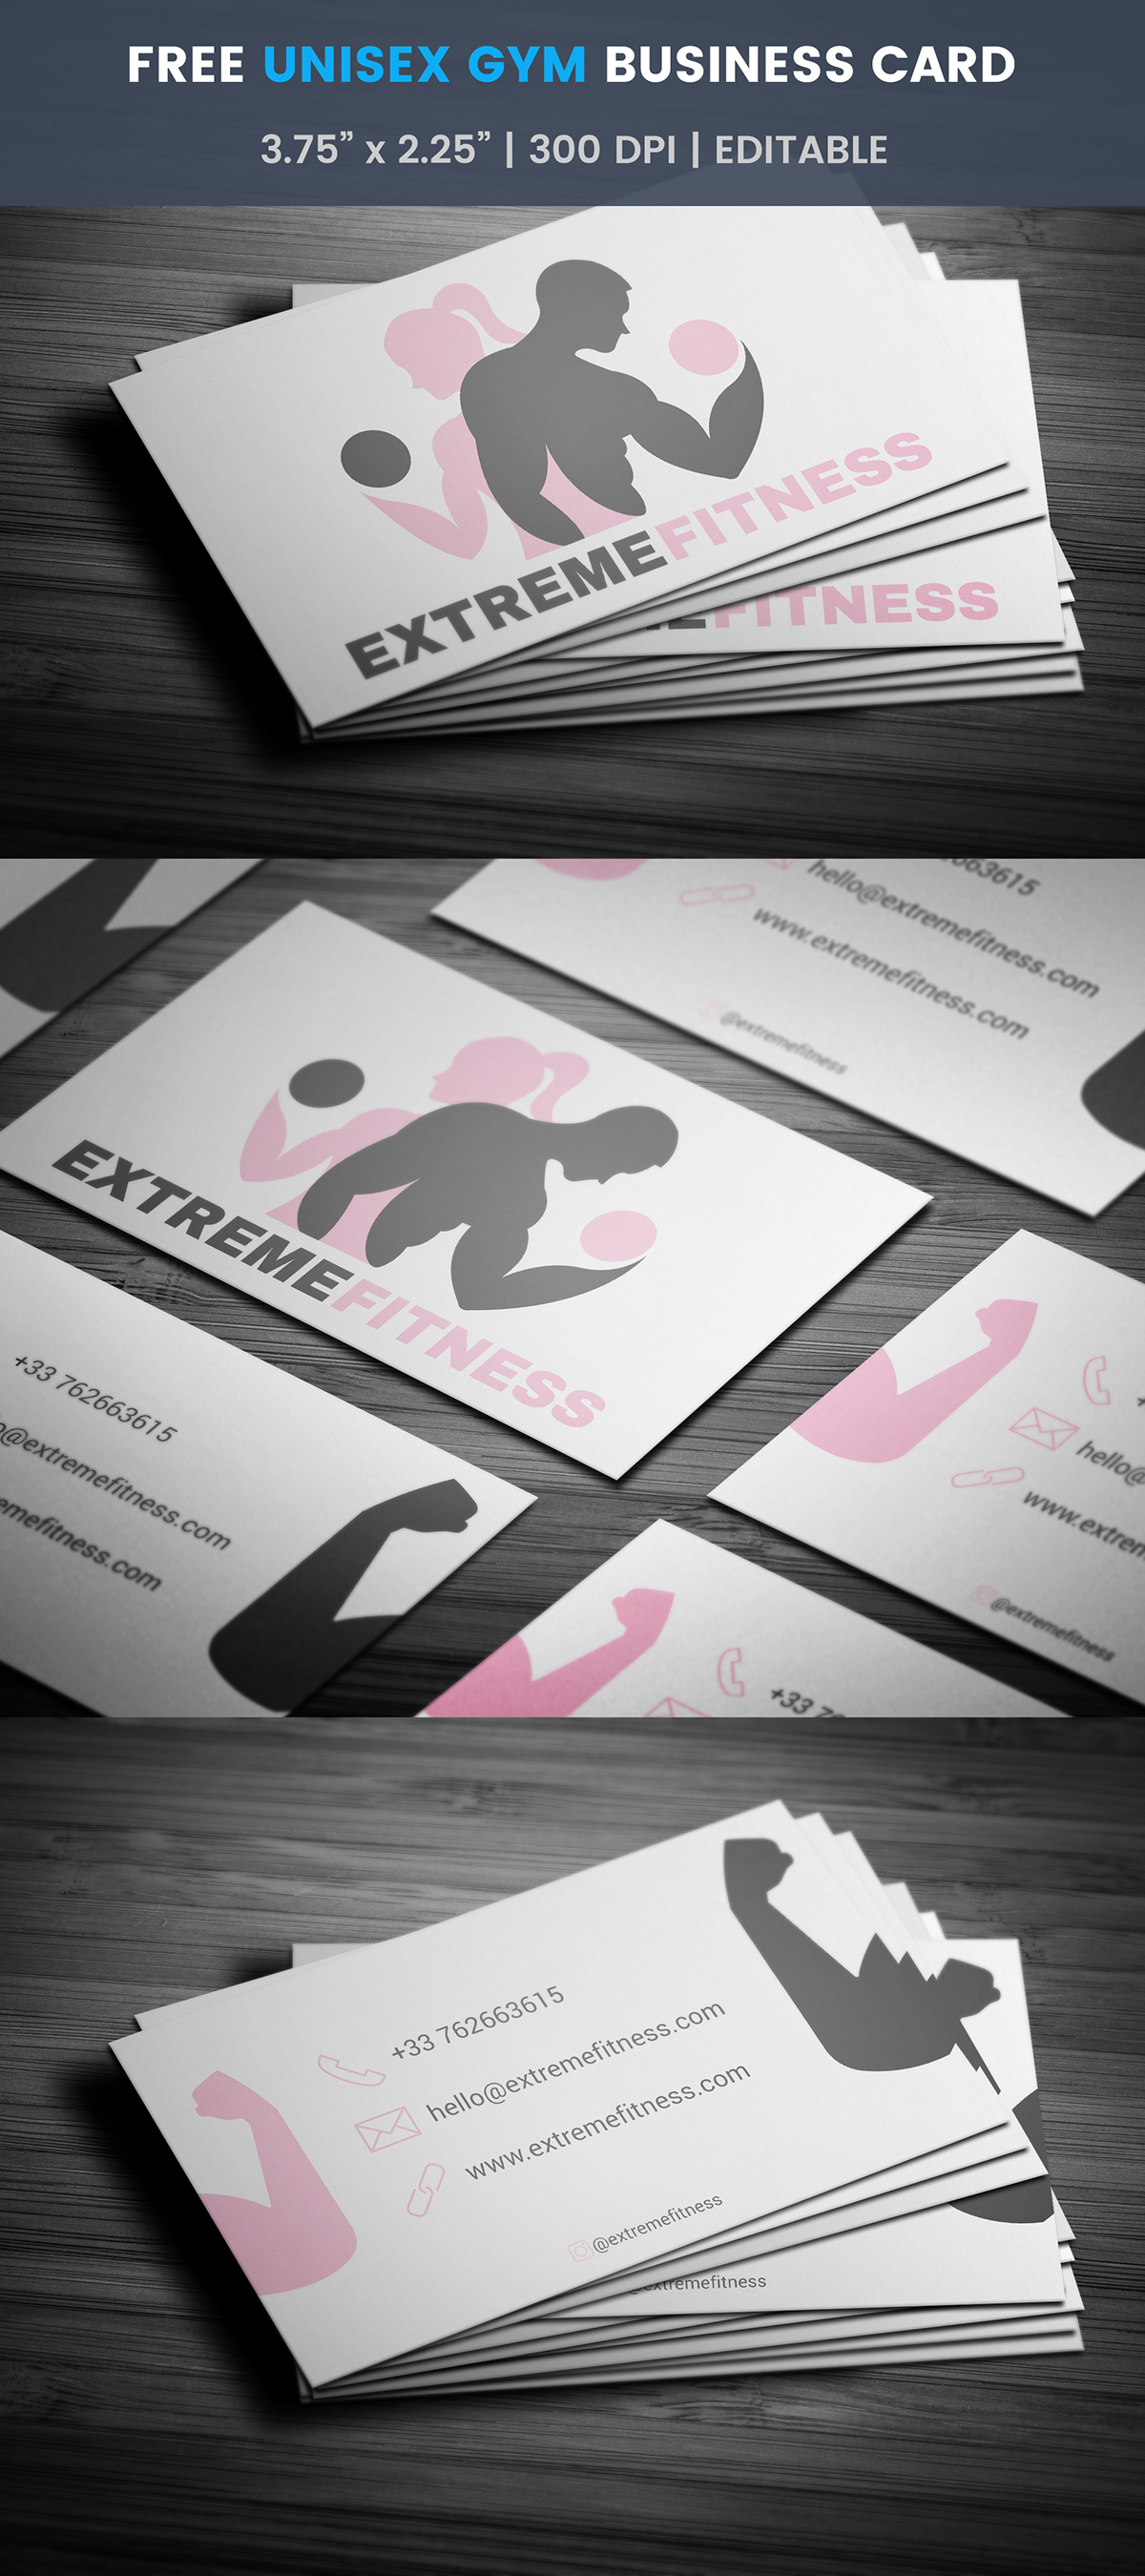 Free fitness business card template on student show free fitness business card template cheaphphosting Image collections